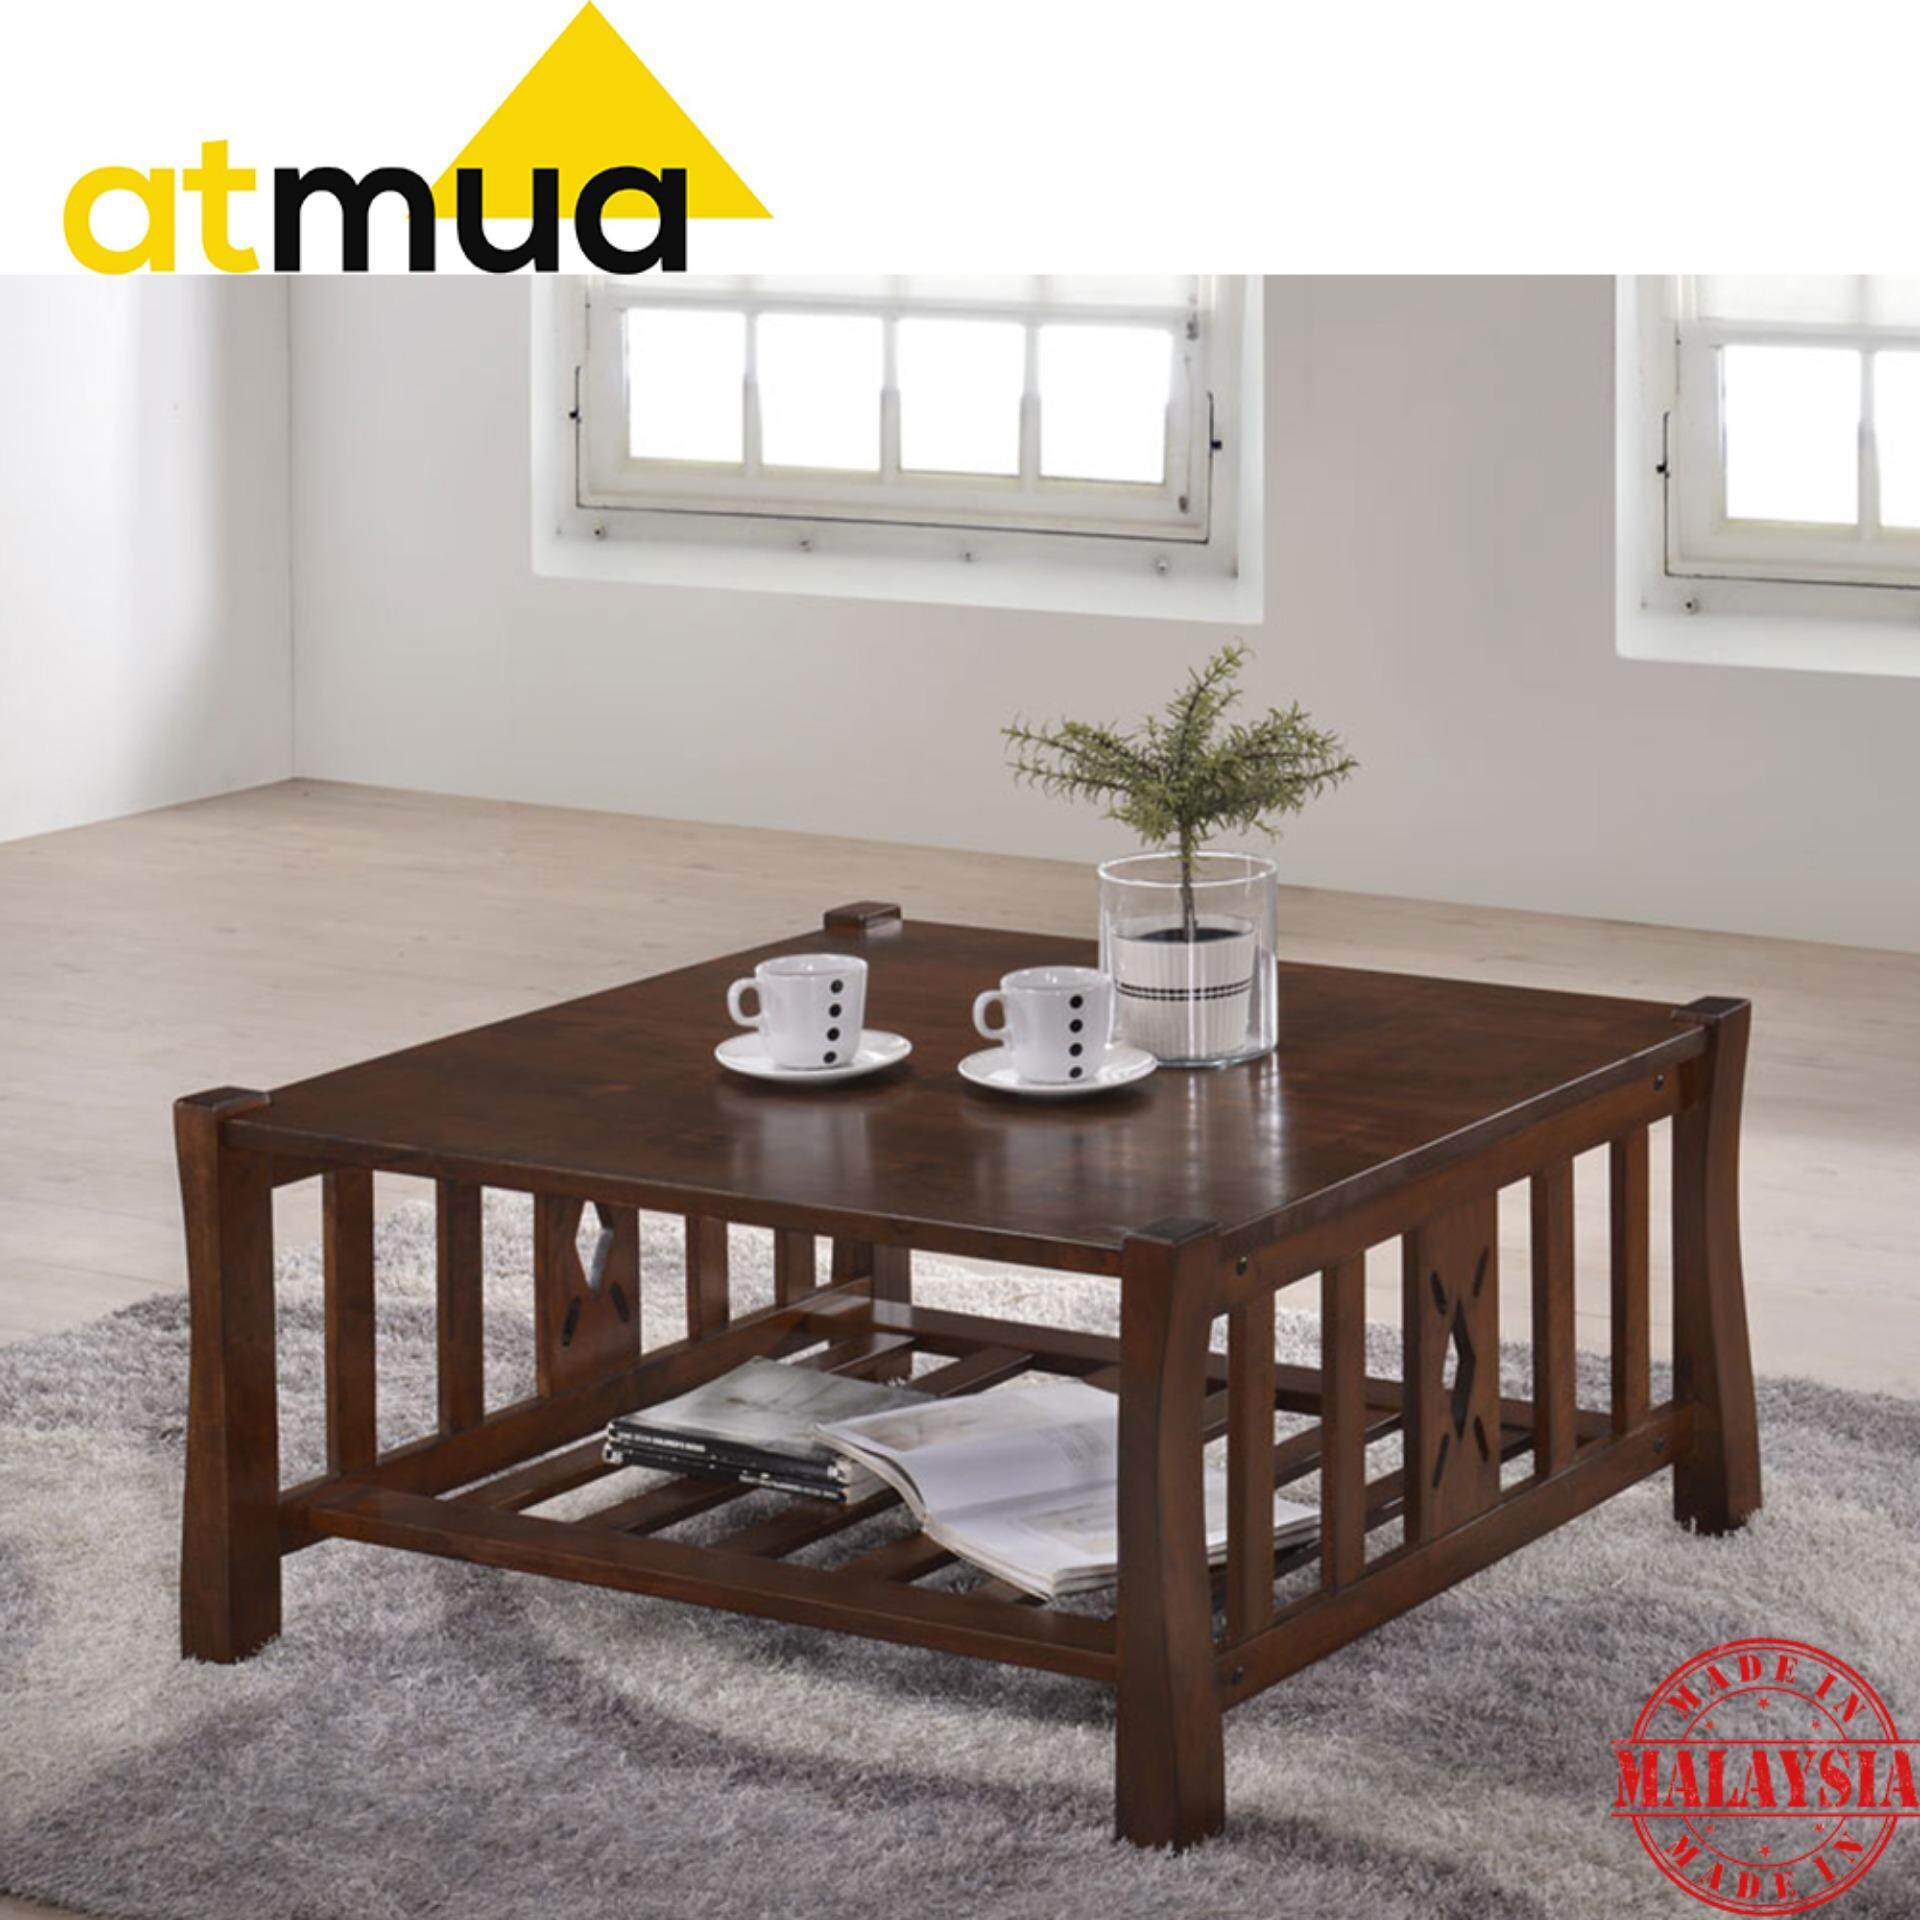 Atmua Vincent Square Coffee Table Classic Design Full Solid Wood